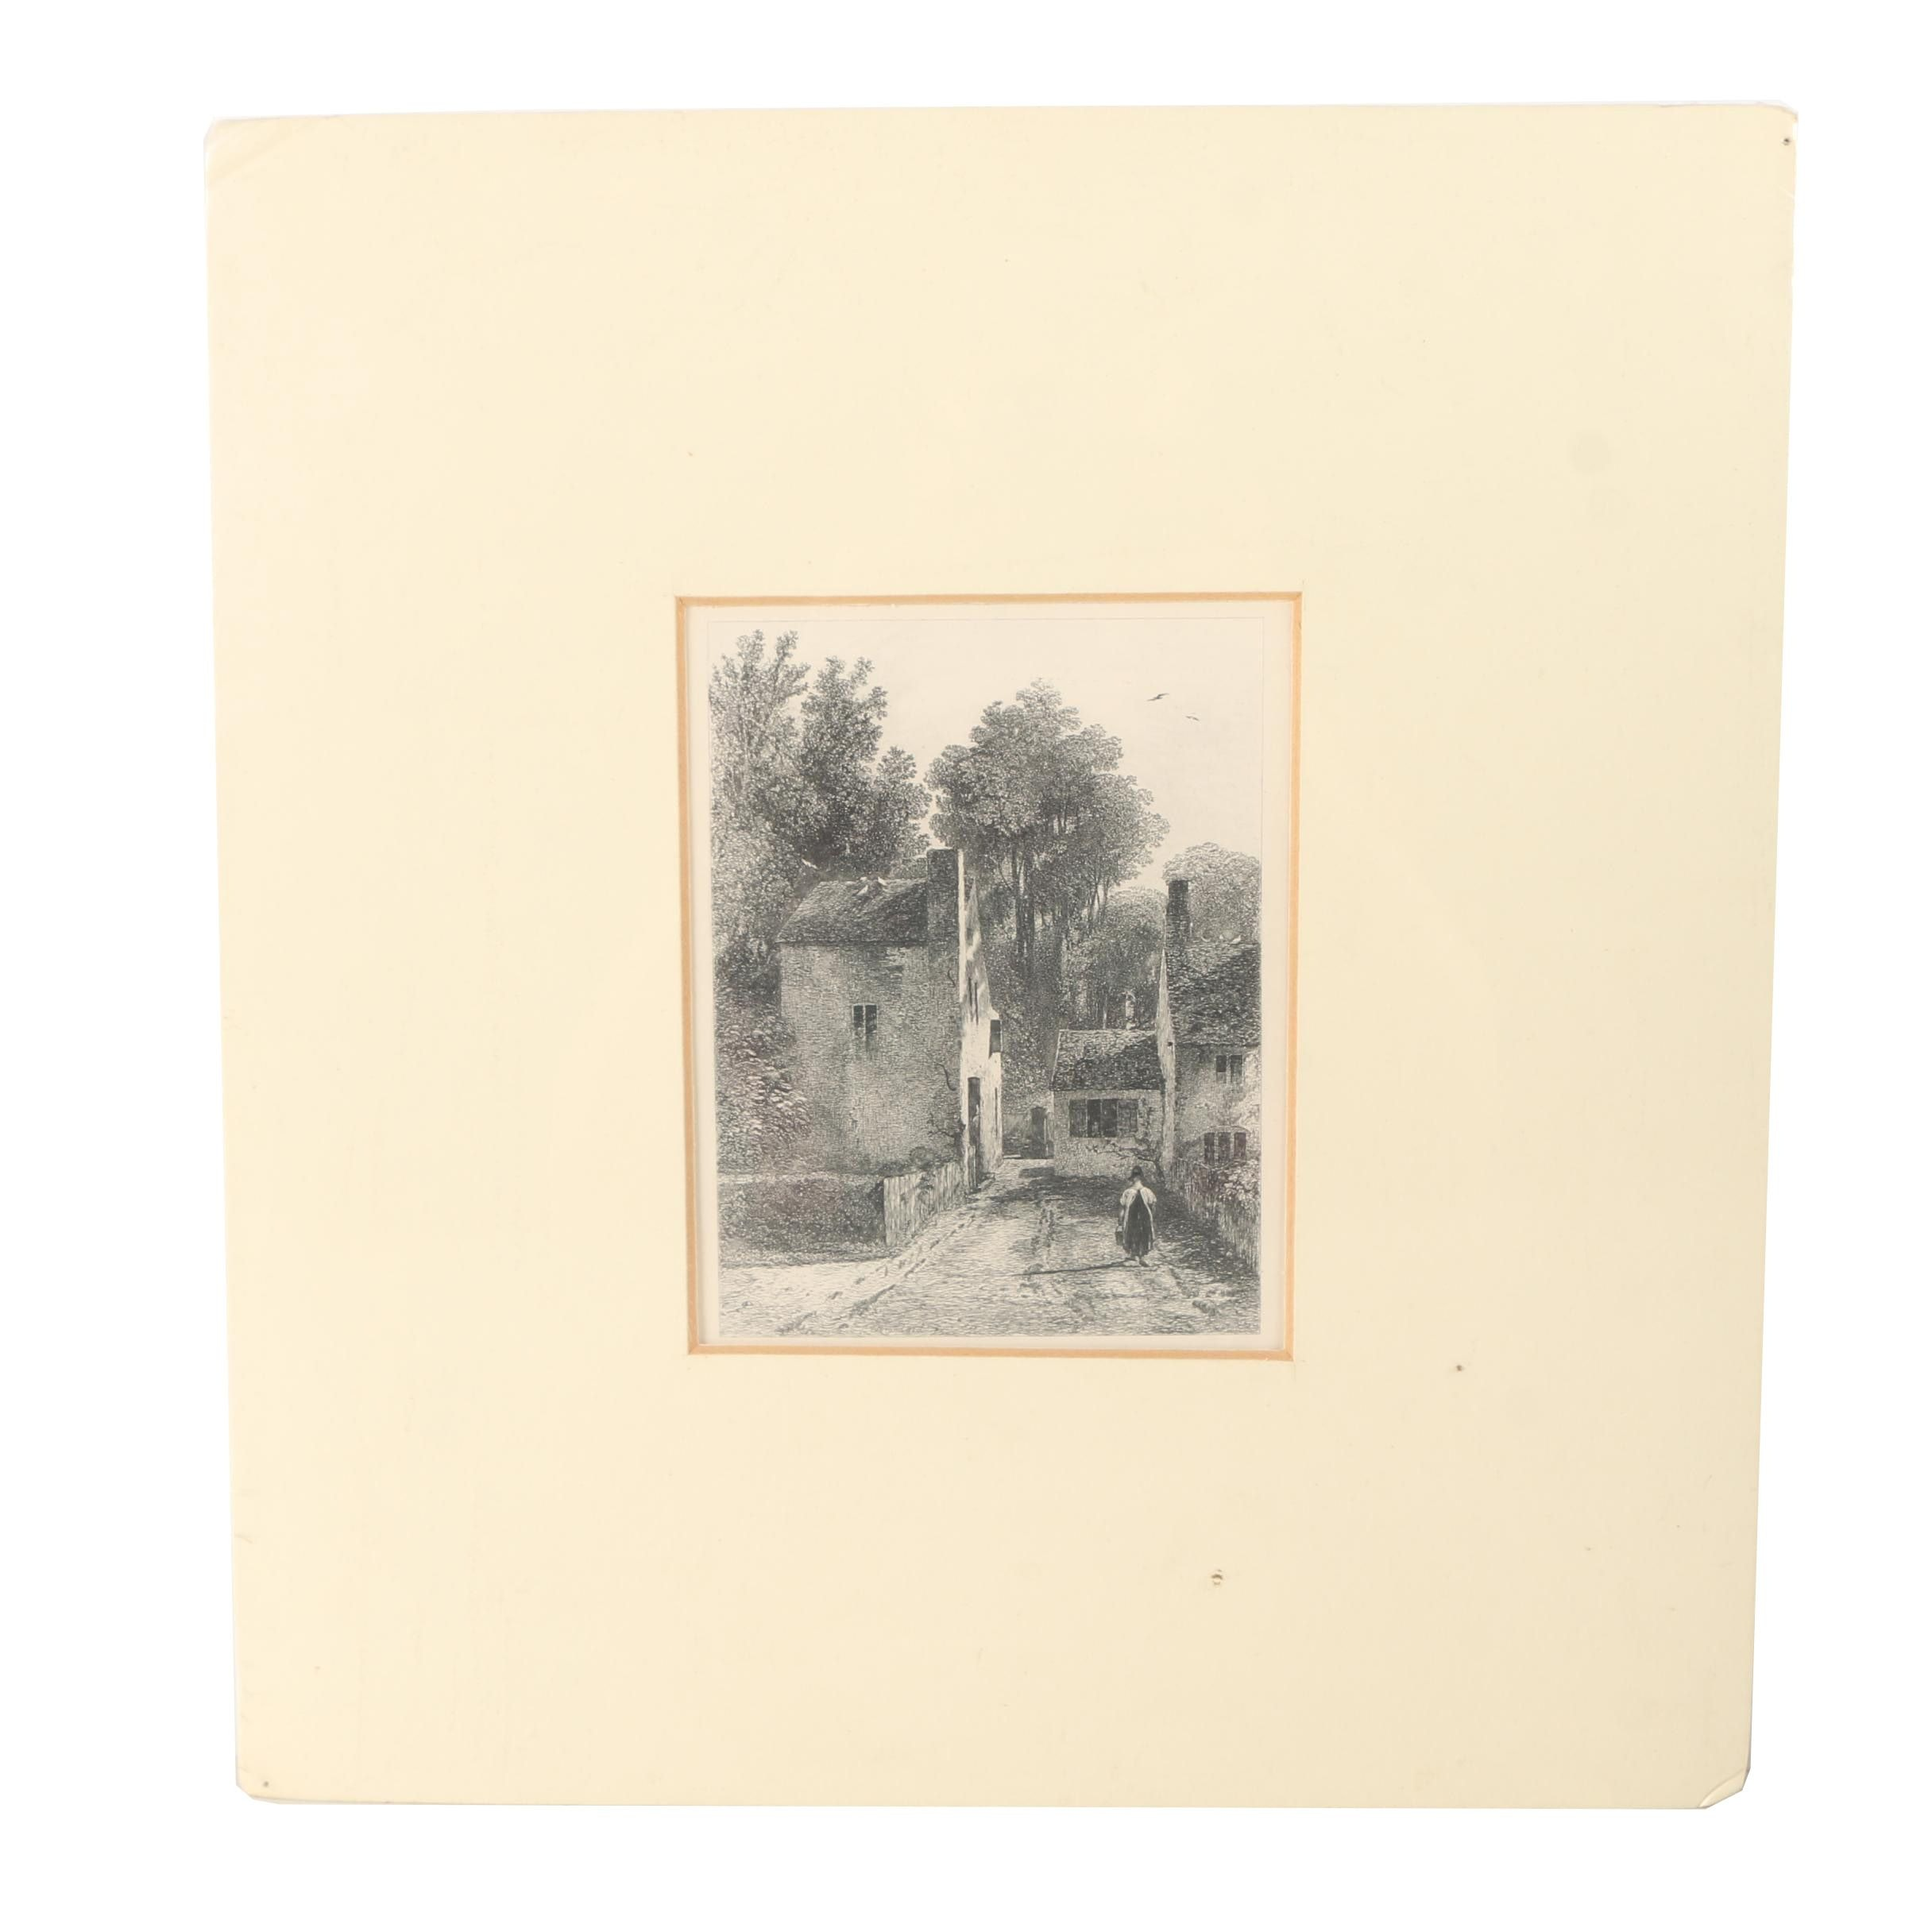 Etching of Woman Walking Down a Village Road